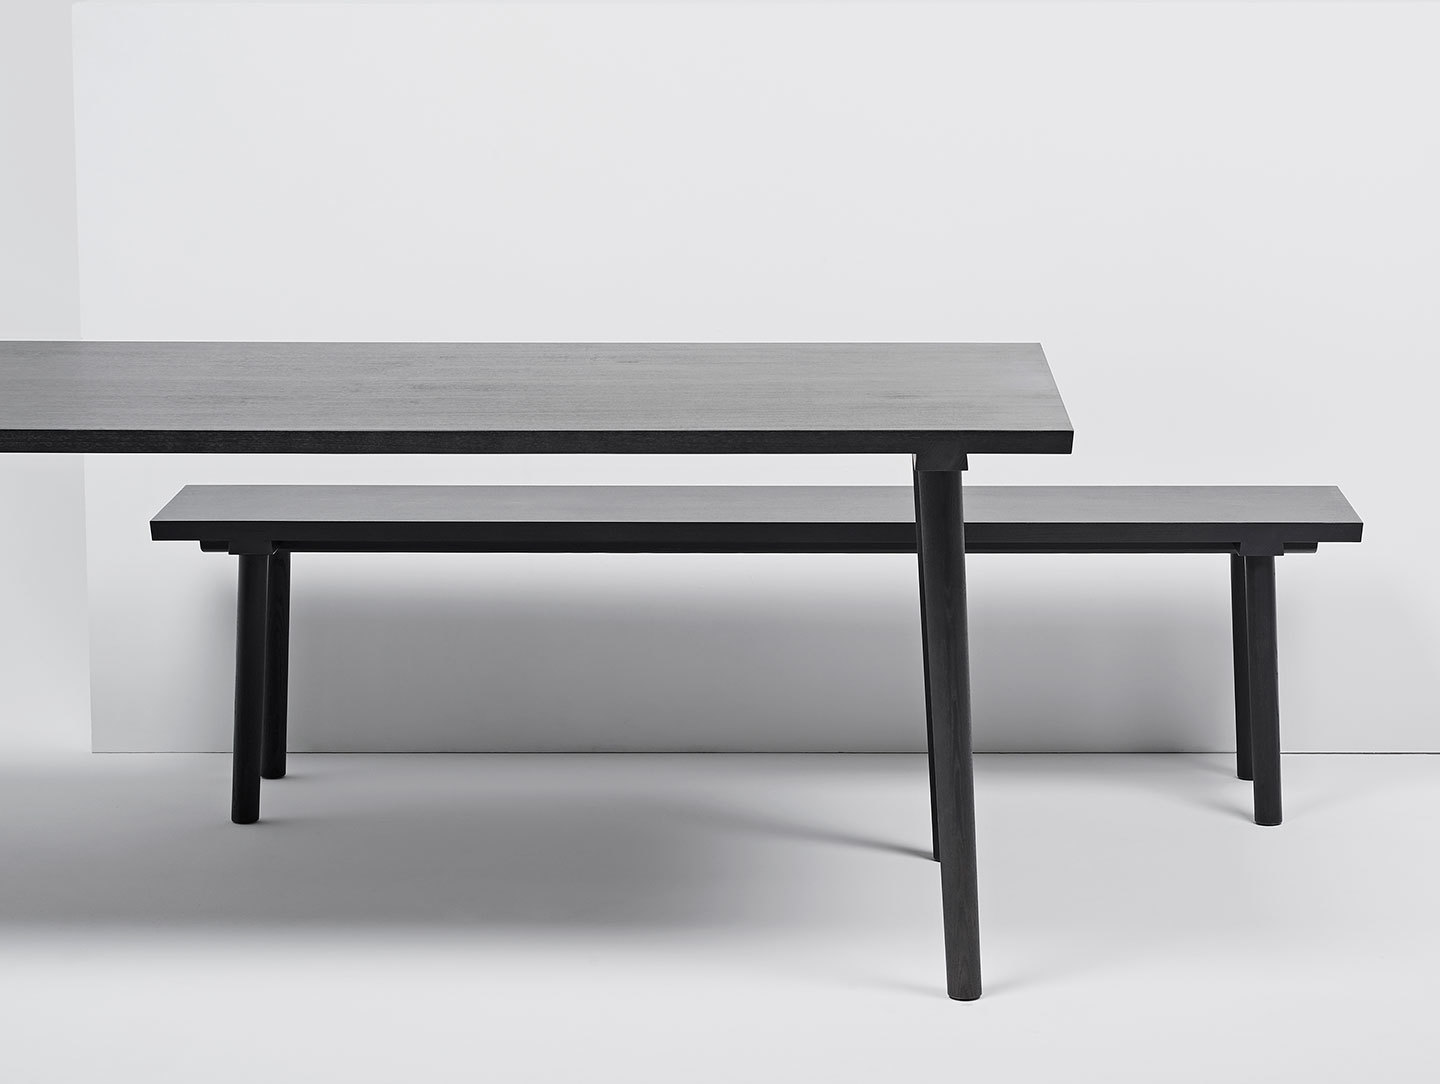 Mattiazzi Facile Table Black Detail Lambl Homburger Meyer